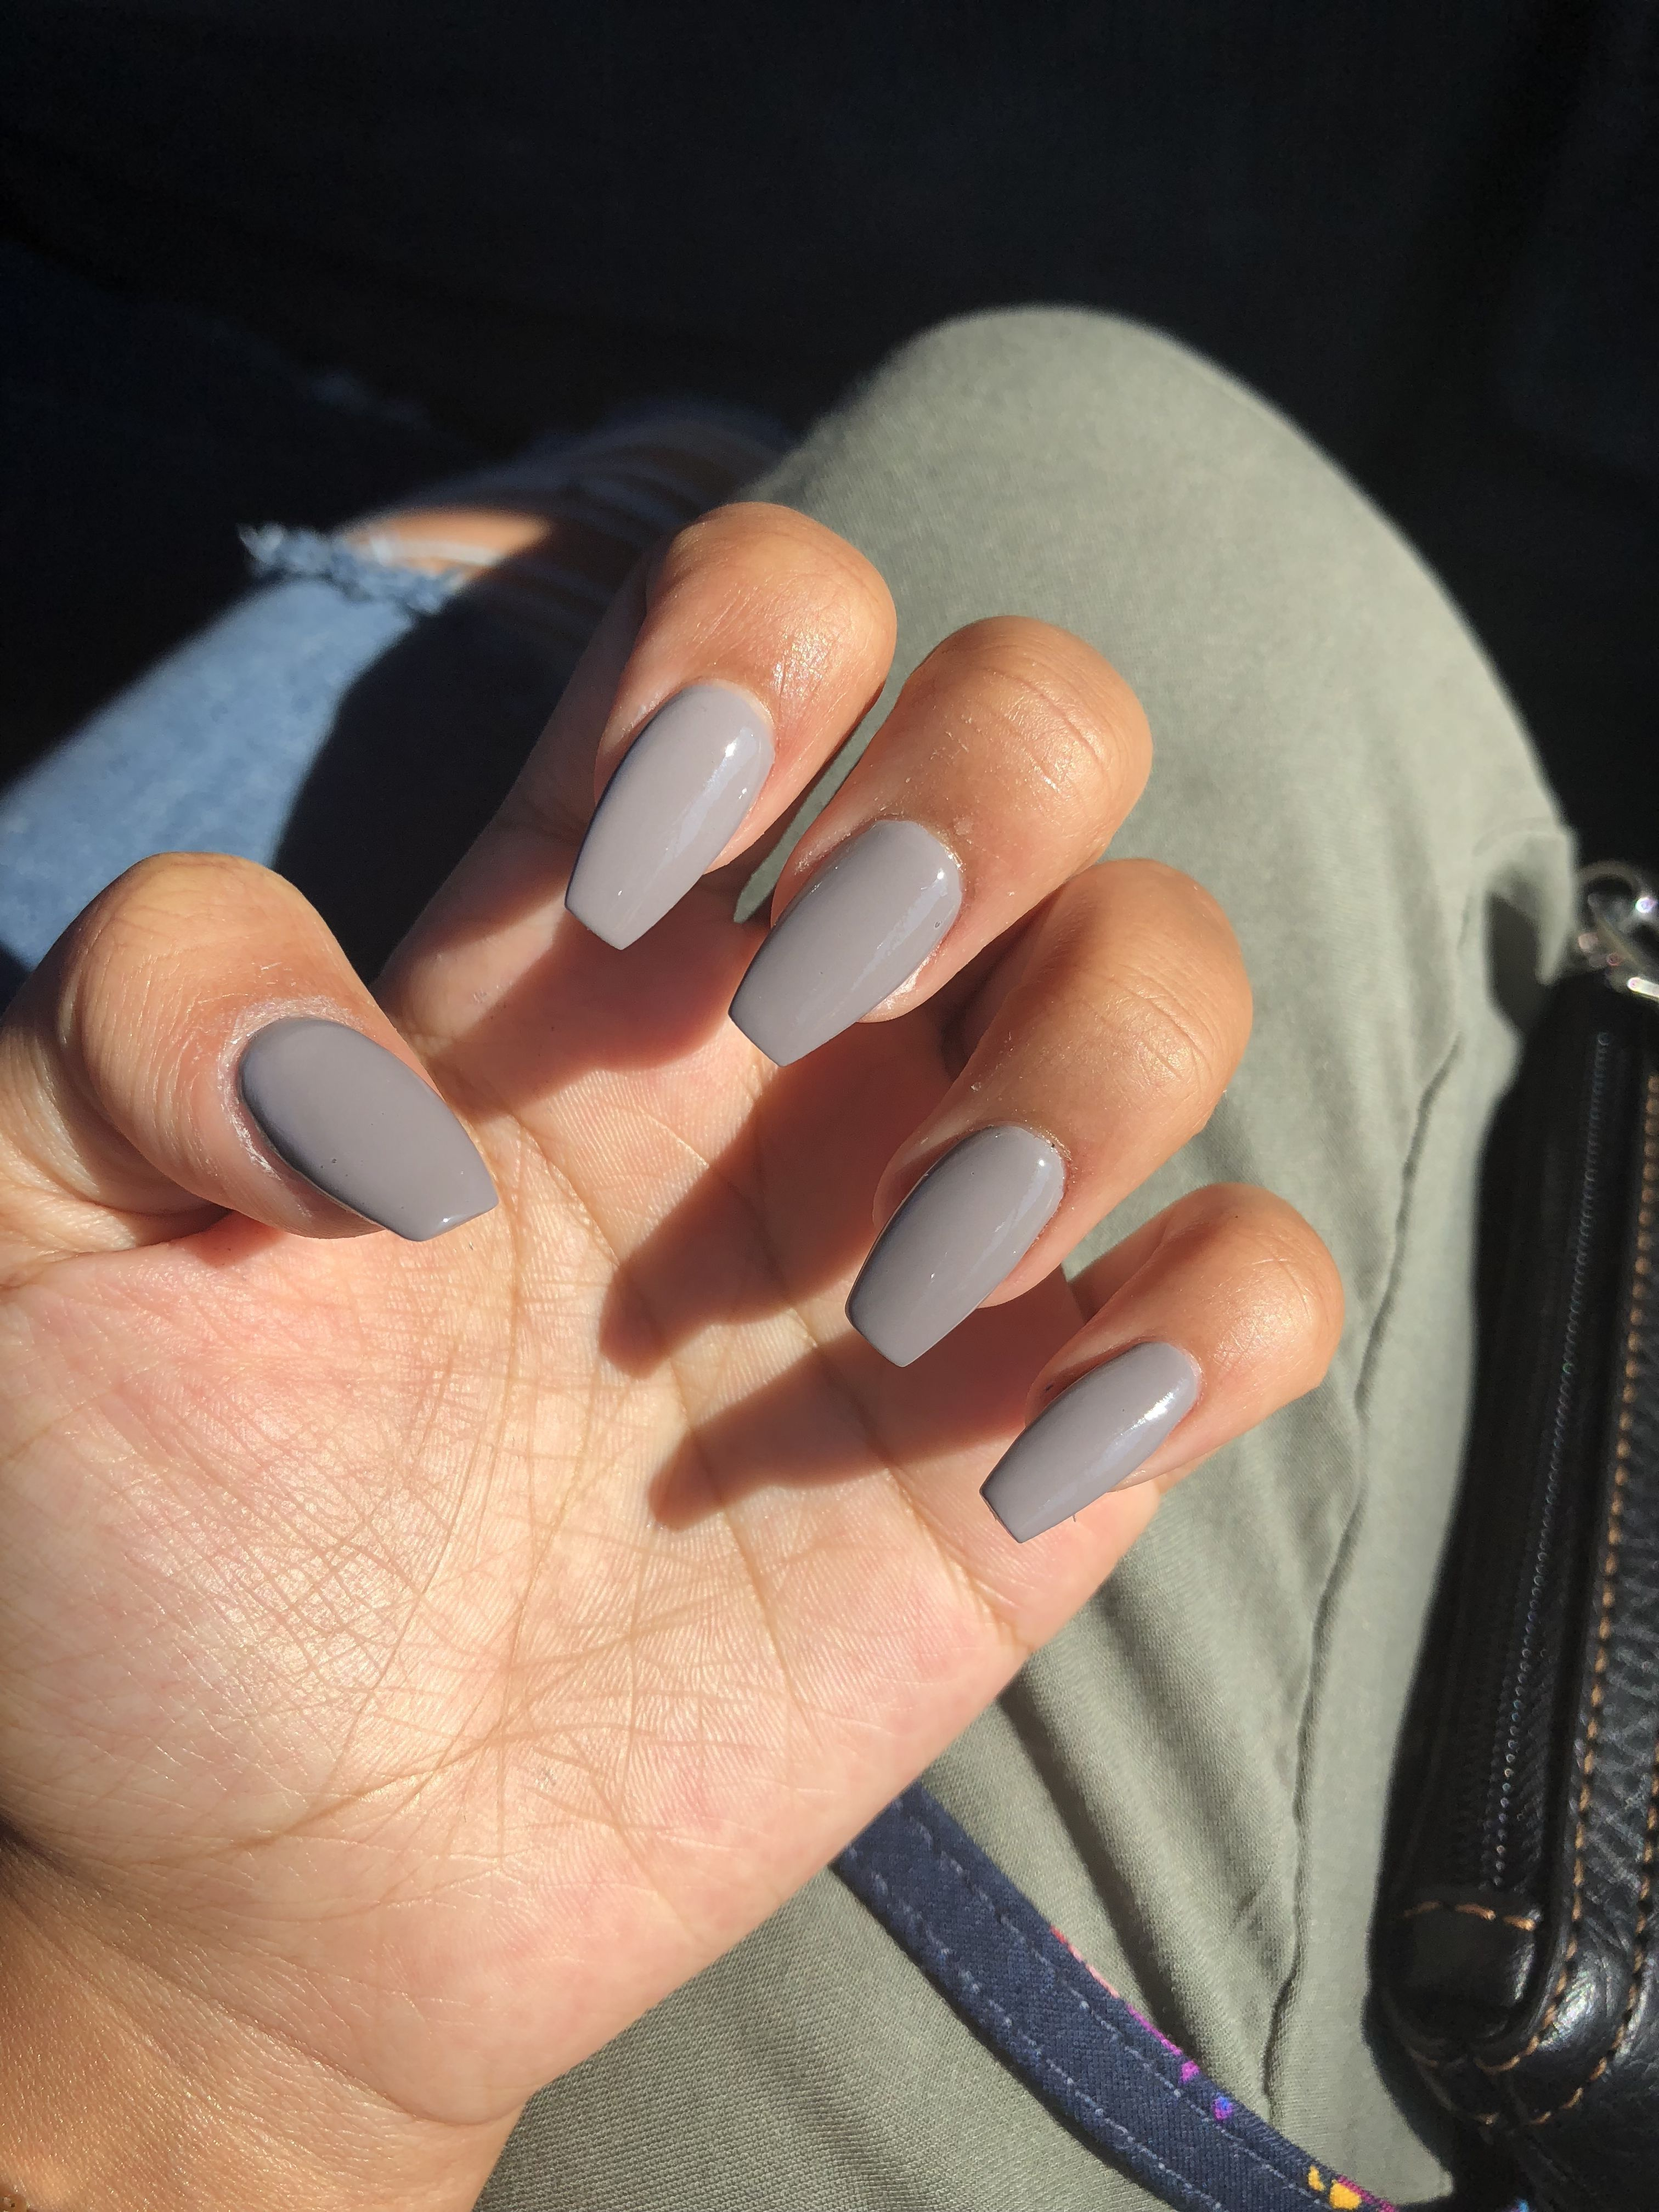 Cute Acrylic Nails Grey Imagine Matching Your Nail Art Pattern With Your Favorite Sweater Th With Images Acrylic Nails Coffin Short Grey Acrylic Nails Coffin Nails Designs